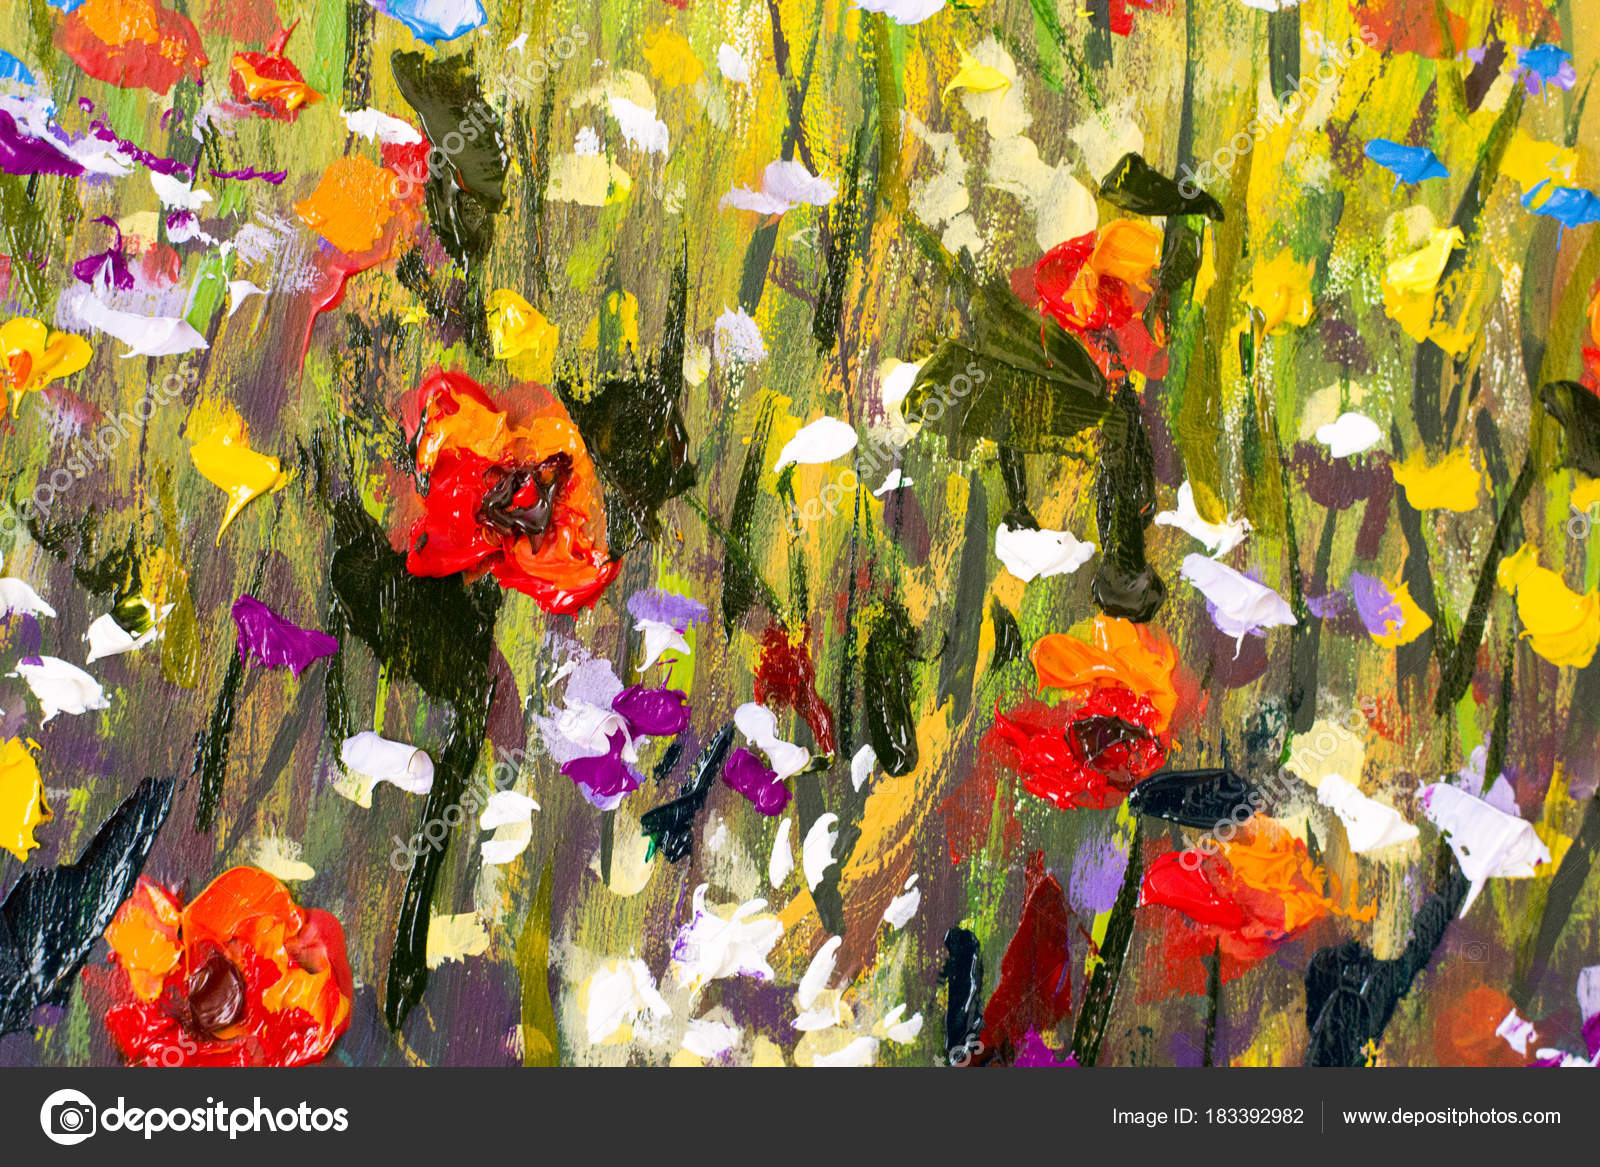 Red Poppies Flower Field Original Handmade Abstract Oil Painting